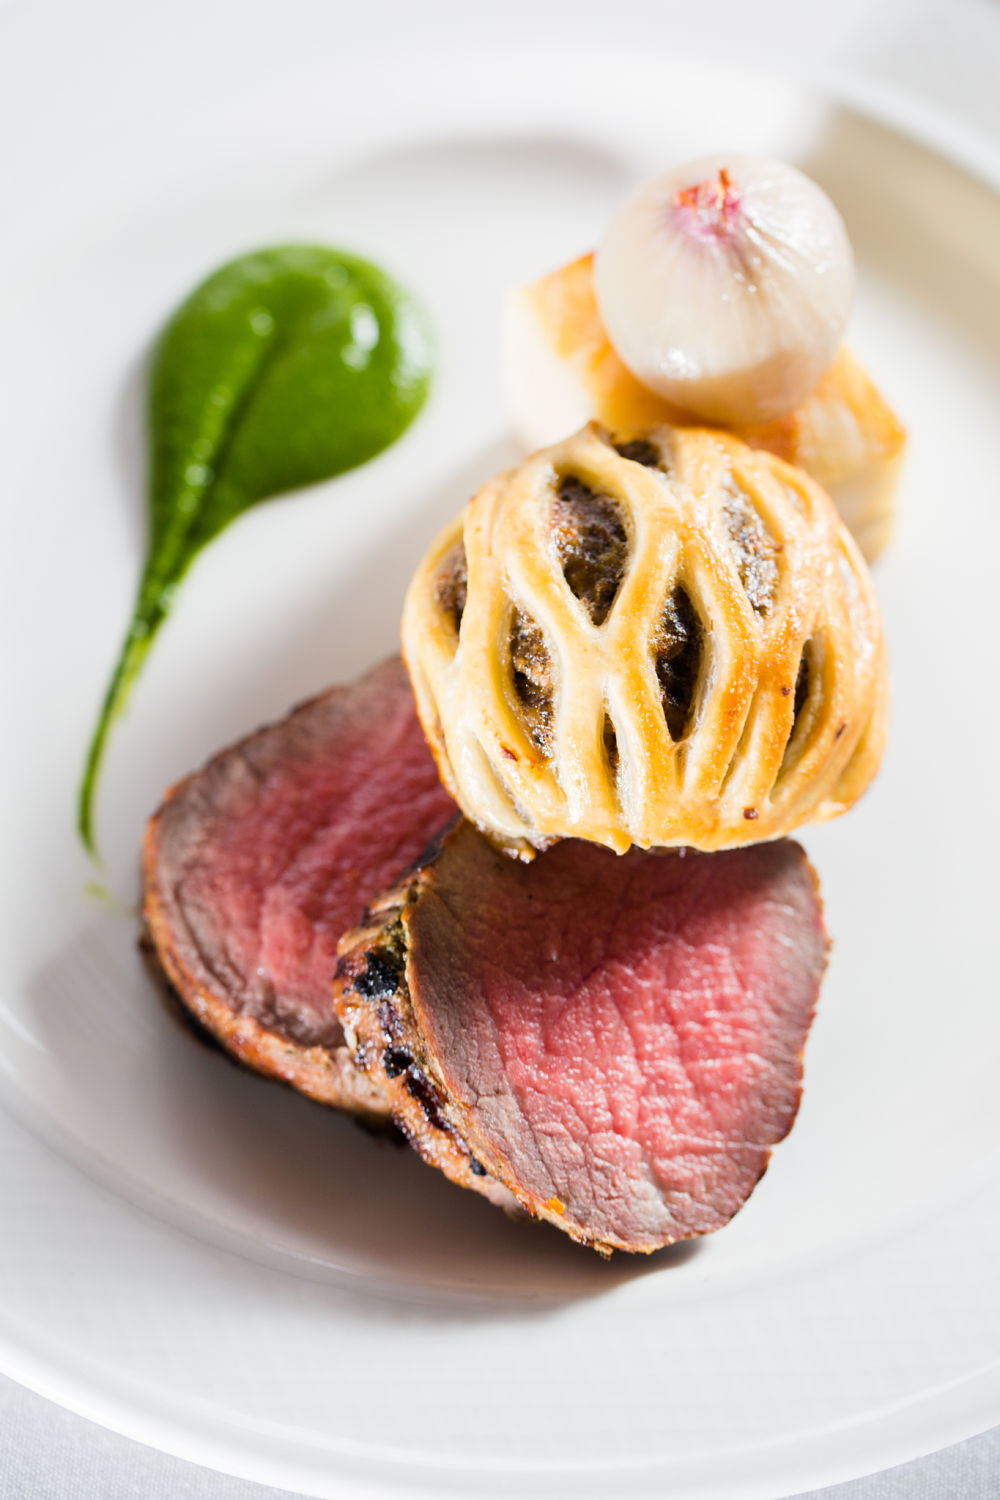 Sirloin of Beef with Truffled Mushrooms